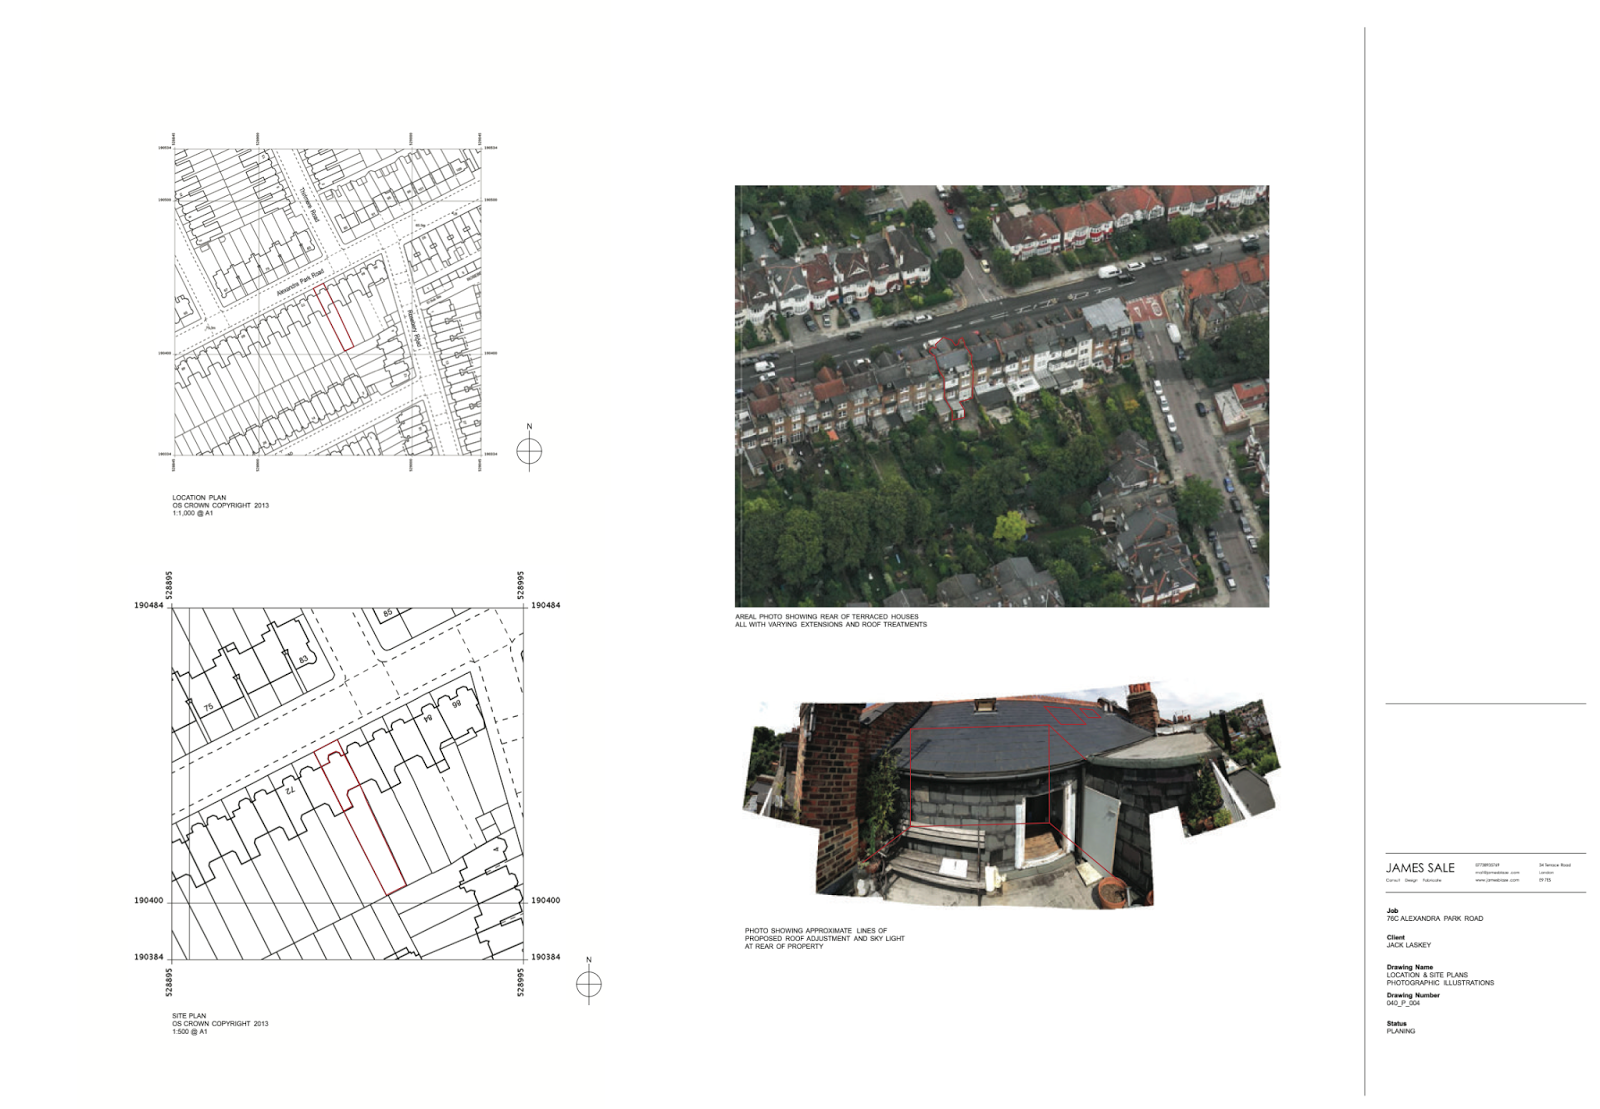 successful planning application advice for roof line ideas for alterations to the the roof line in this edwardian flat providing drawings as well as advice throughout the planning application process